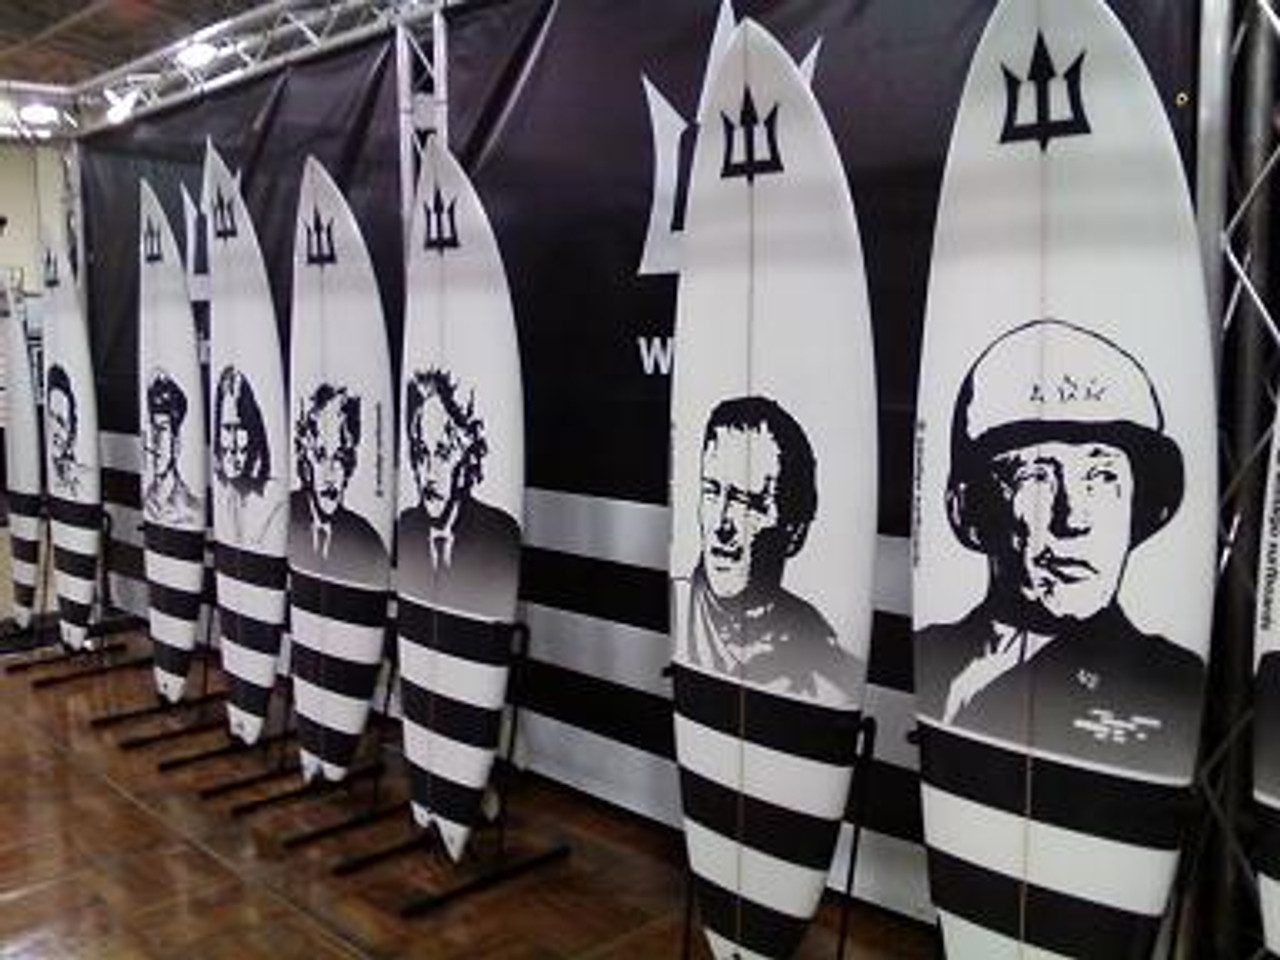 surfboard rack that displays the board art